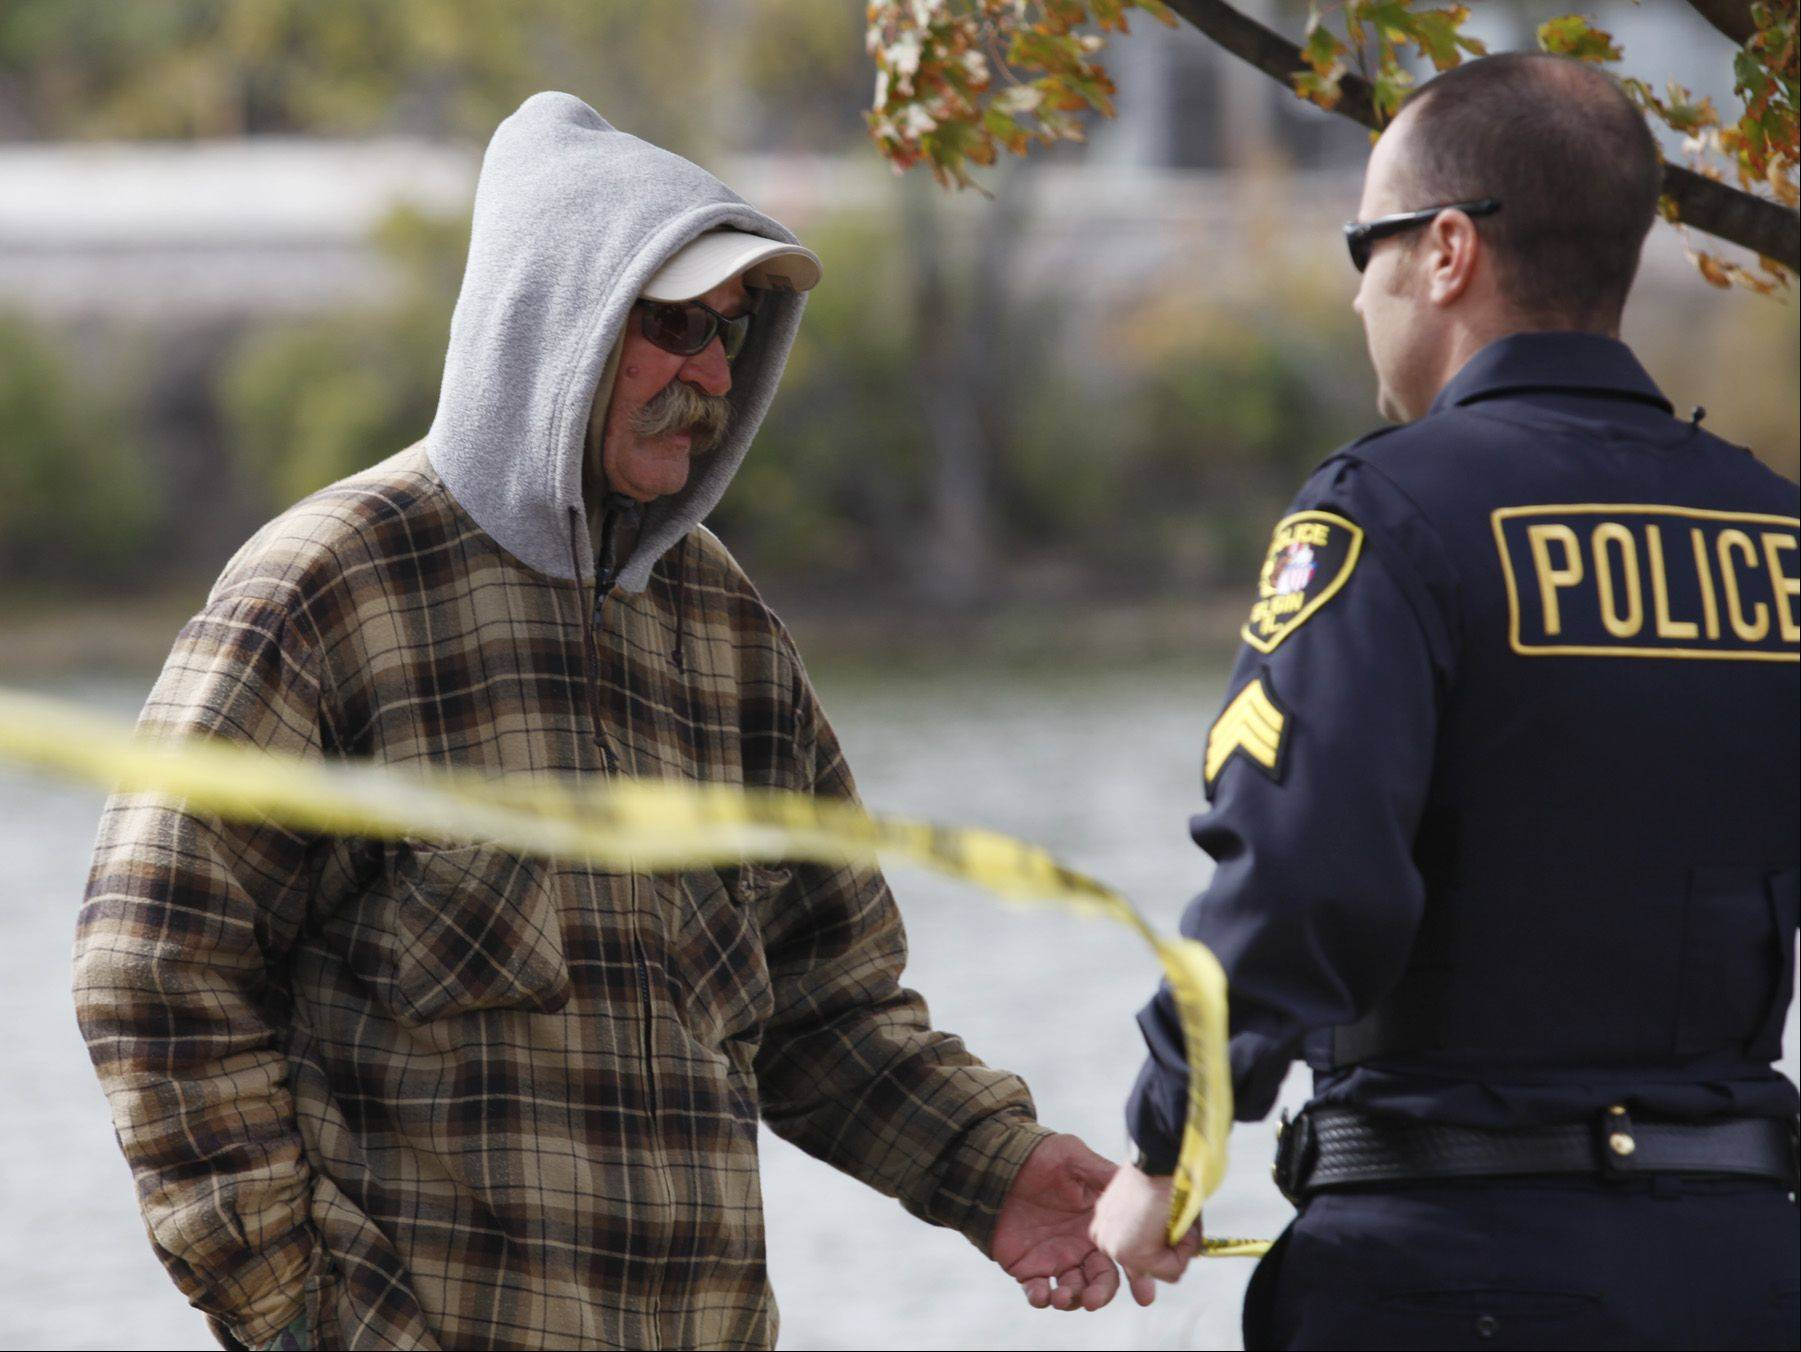 An Elgin police officer speaks with the fisherman who discovered a body Tuesday morning in the Fox River along Festival Park in downtown Elgin.